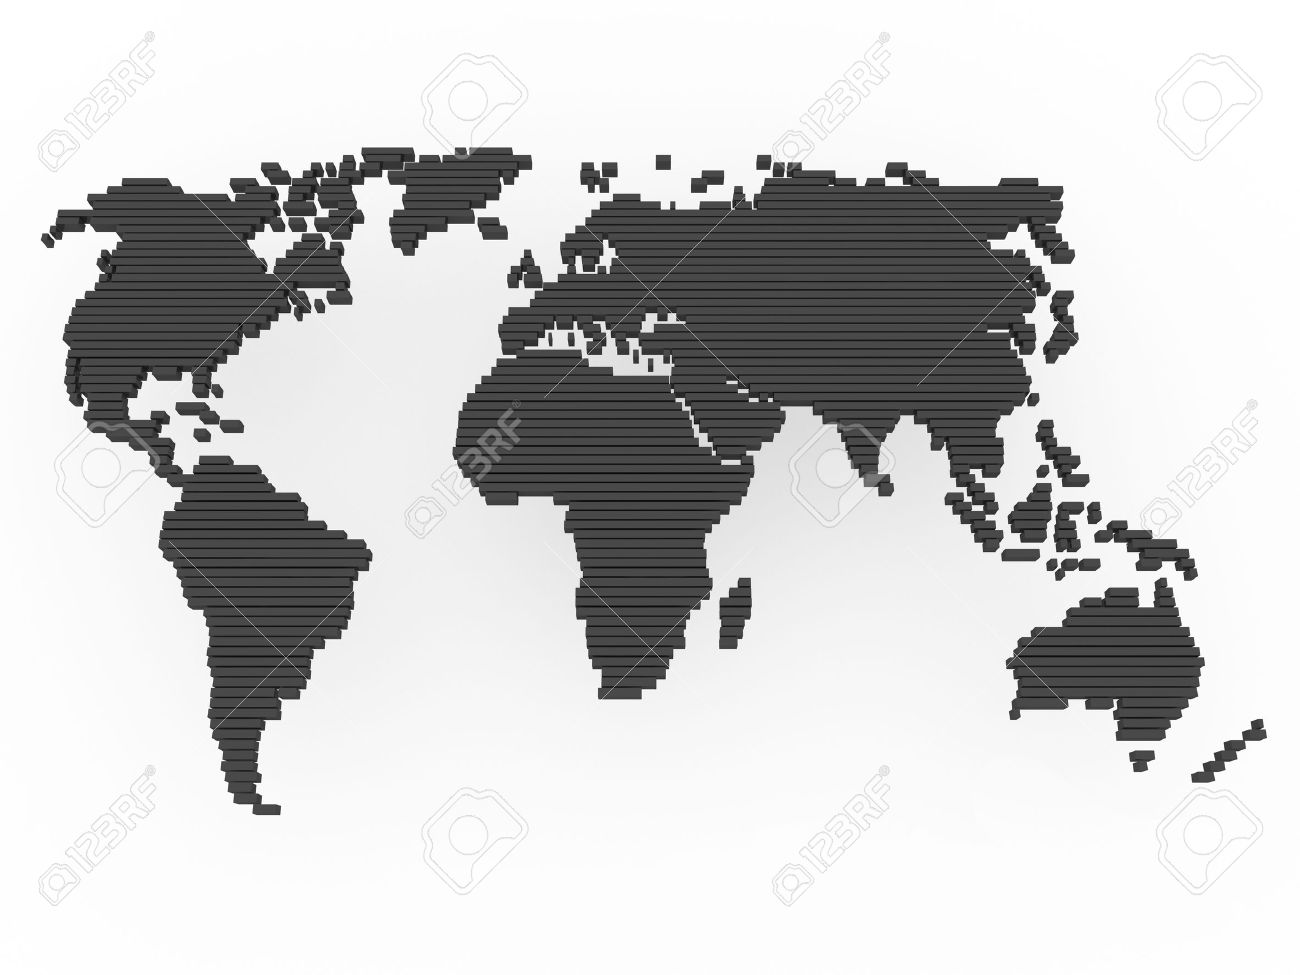 World map africa militaryalicious world map africa gumiabroncs Choice Image